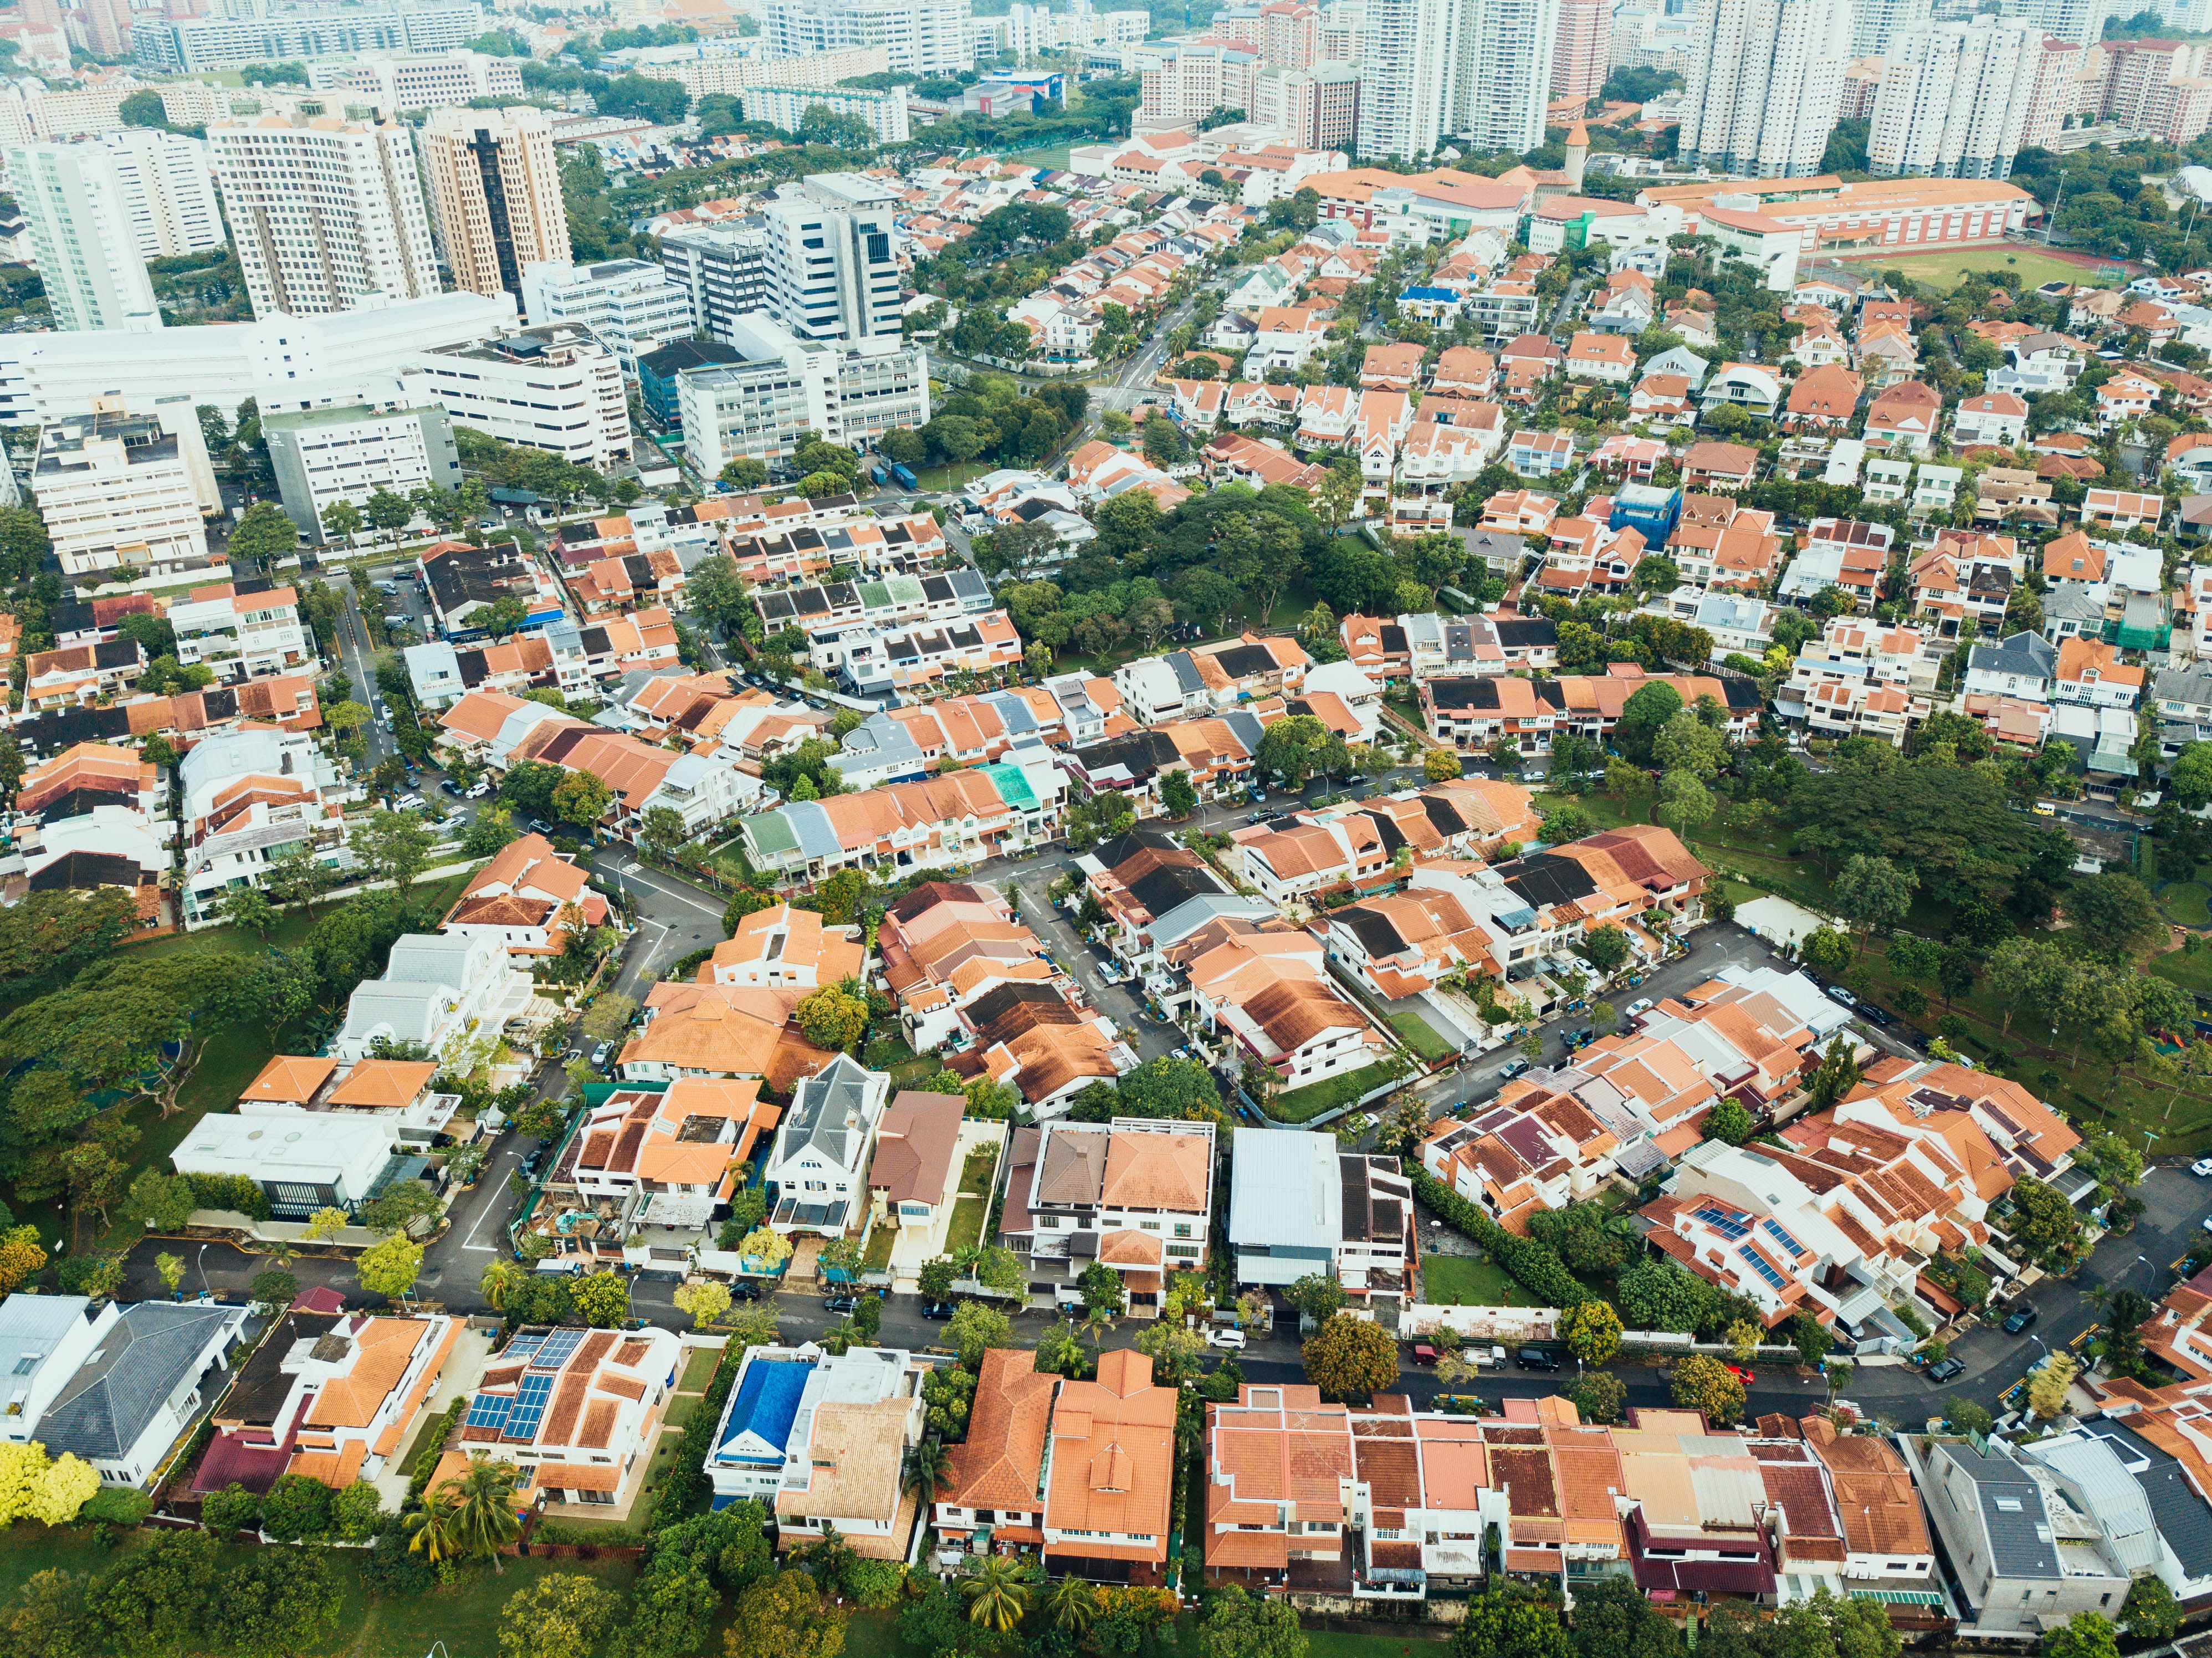 aerial photography of villages near high-rise buildings during daytime